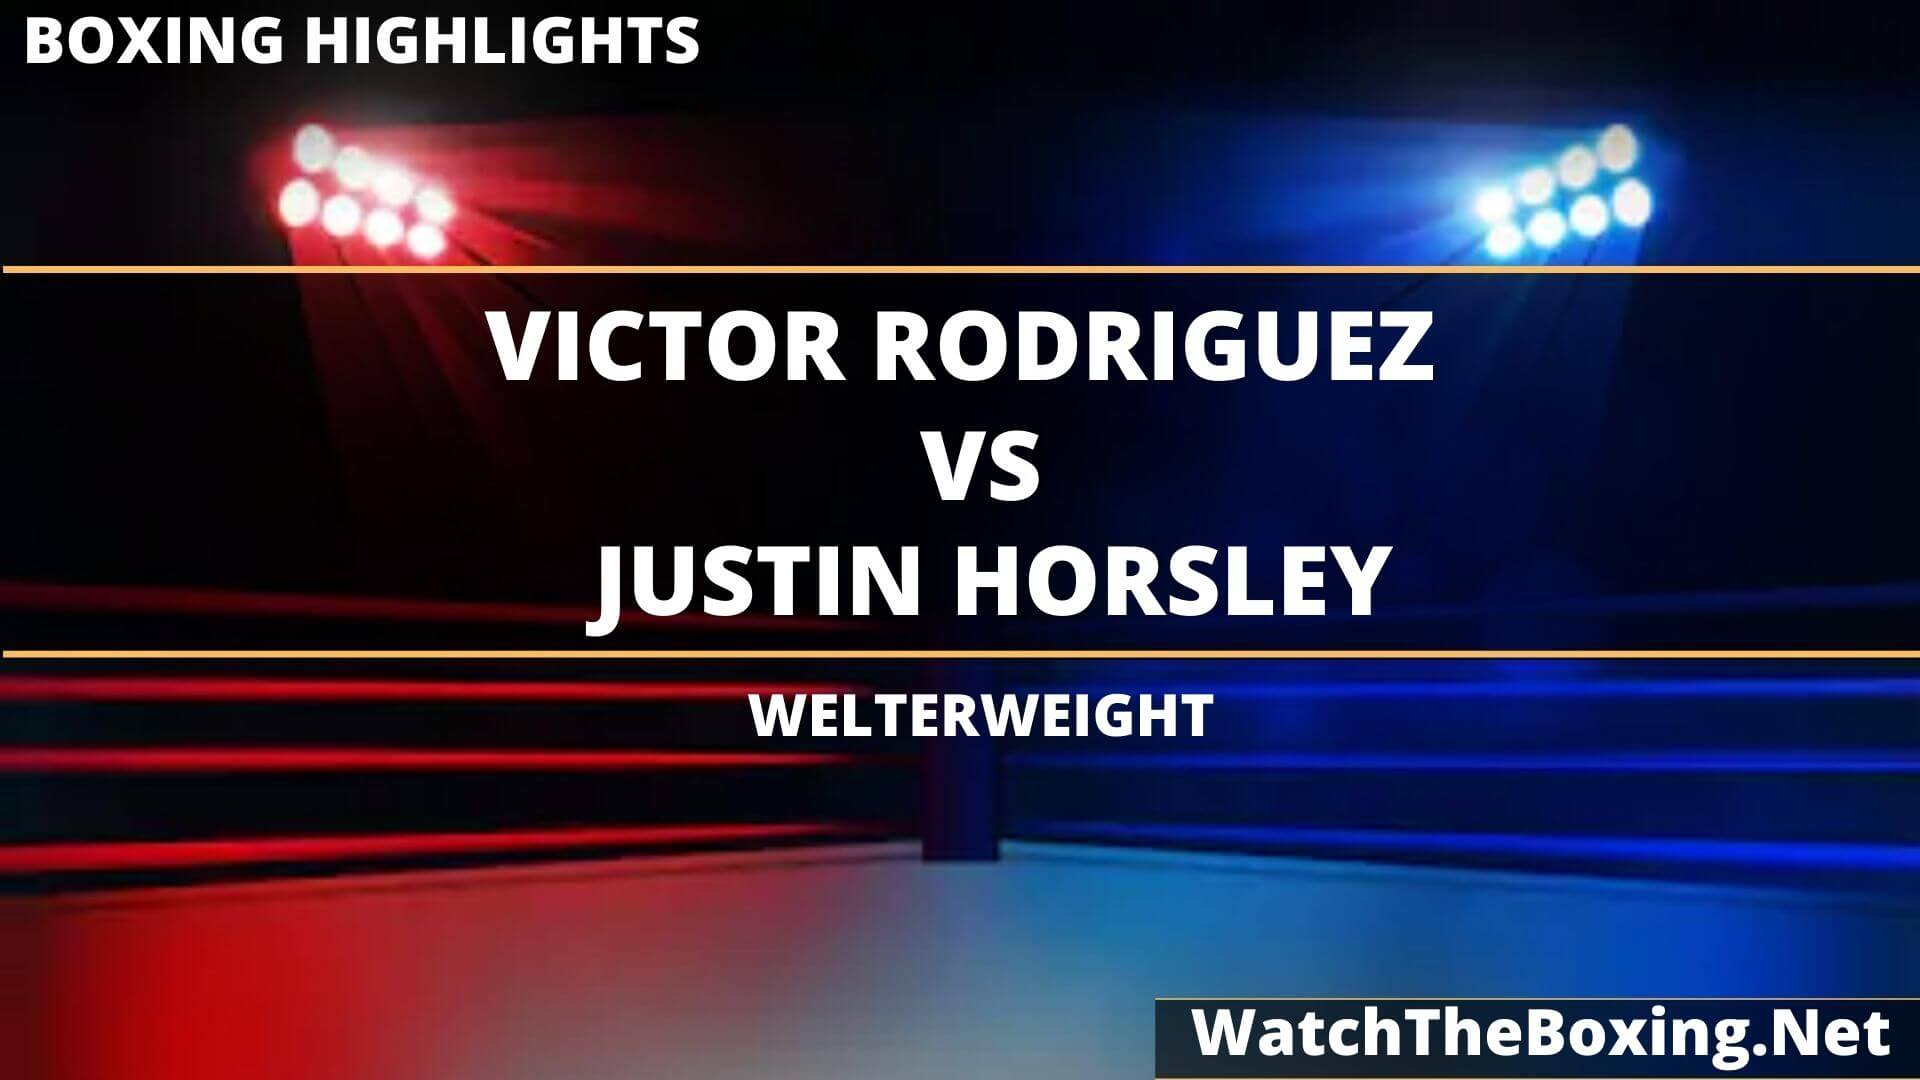 Victor Rodriguez Vs Justin Horsley Highlights 2020 Welterweight